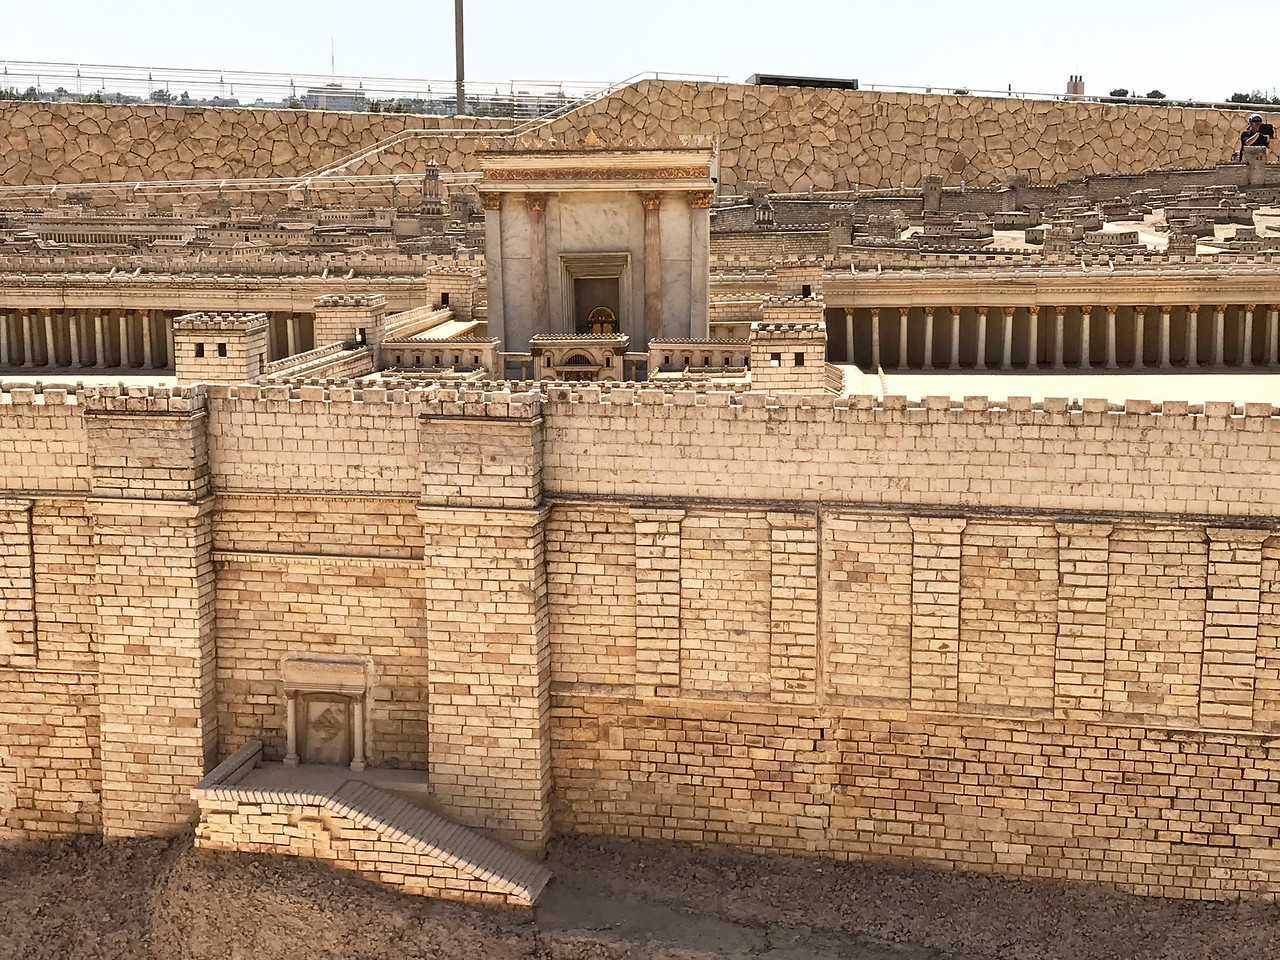 Second Temple destroyed in 70AD.